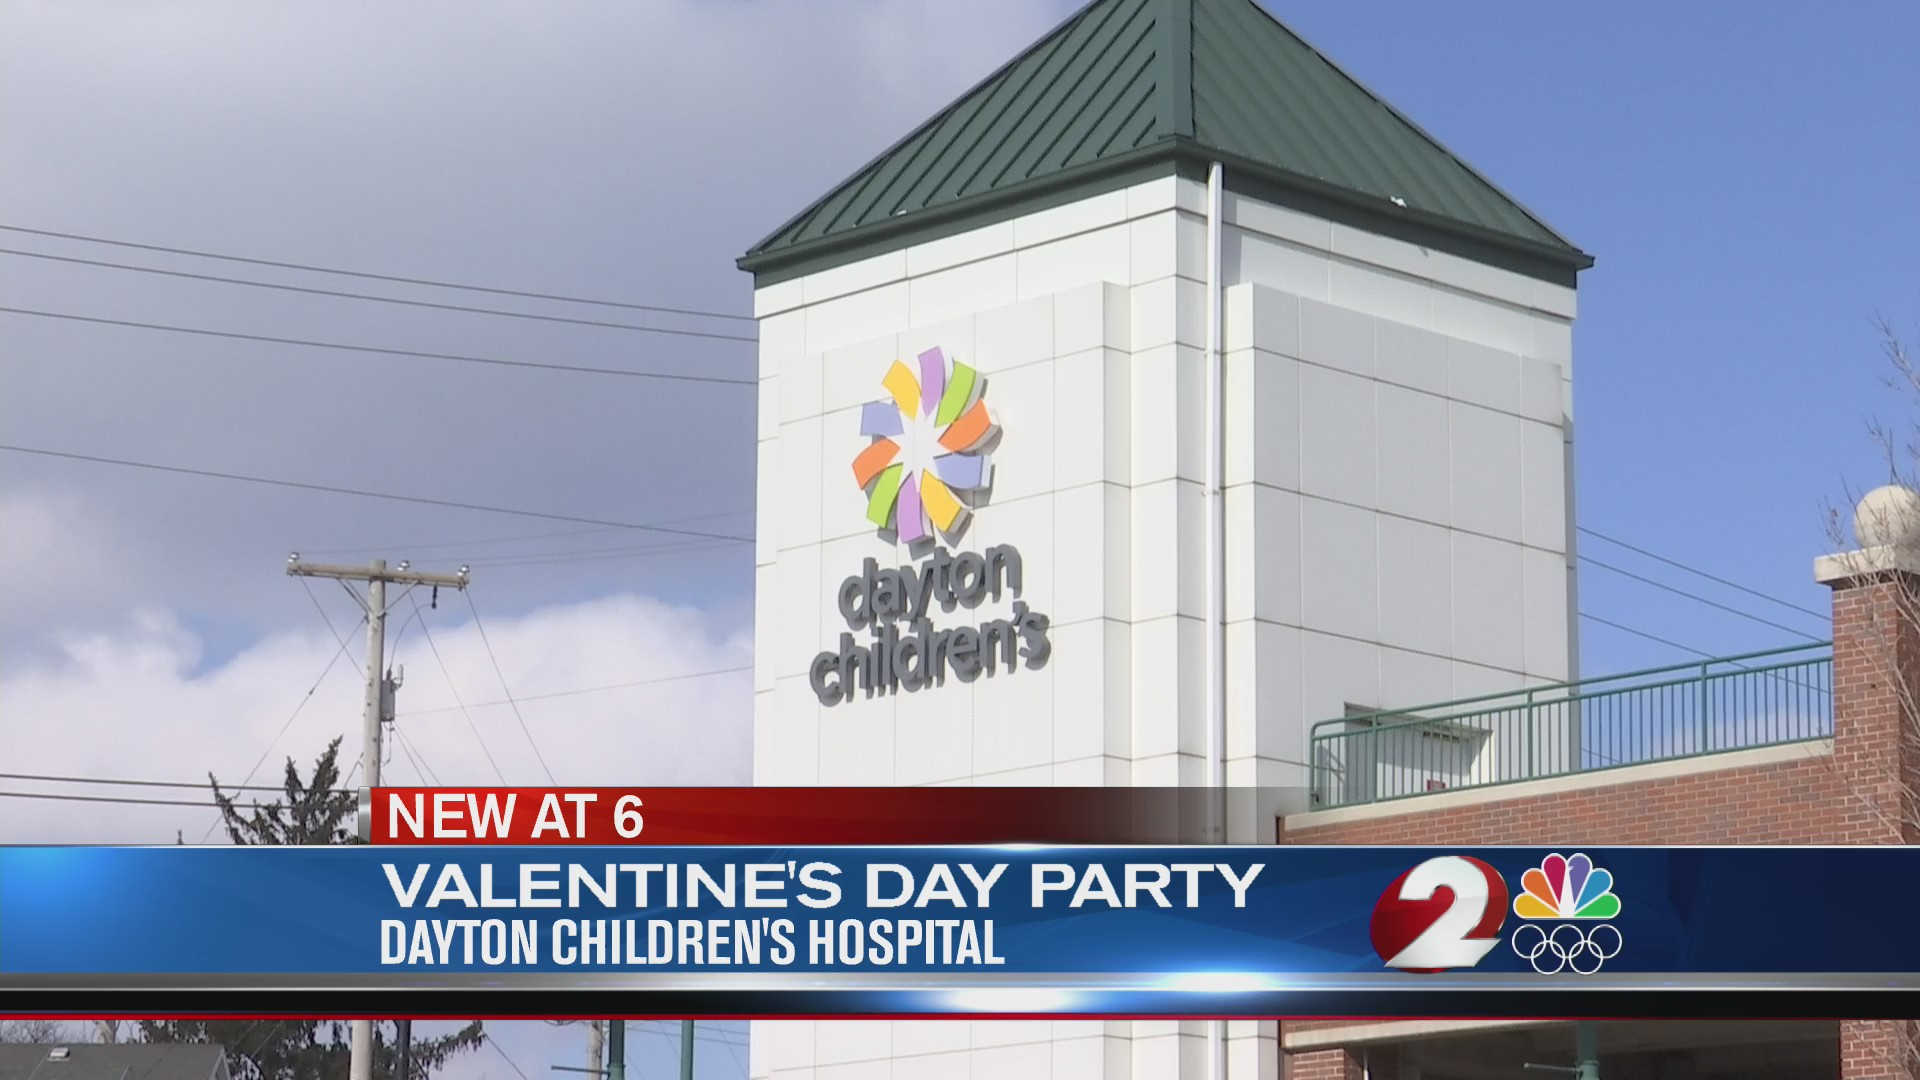 Special Valentine's Day party held at Dayton Children's